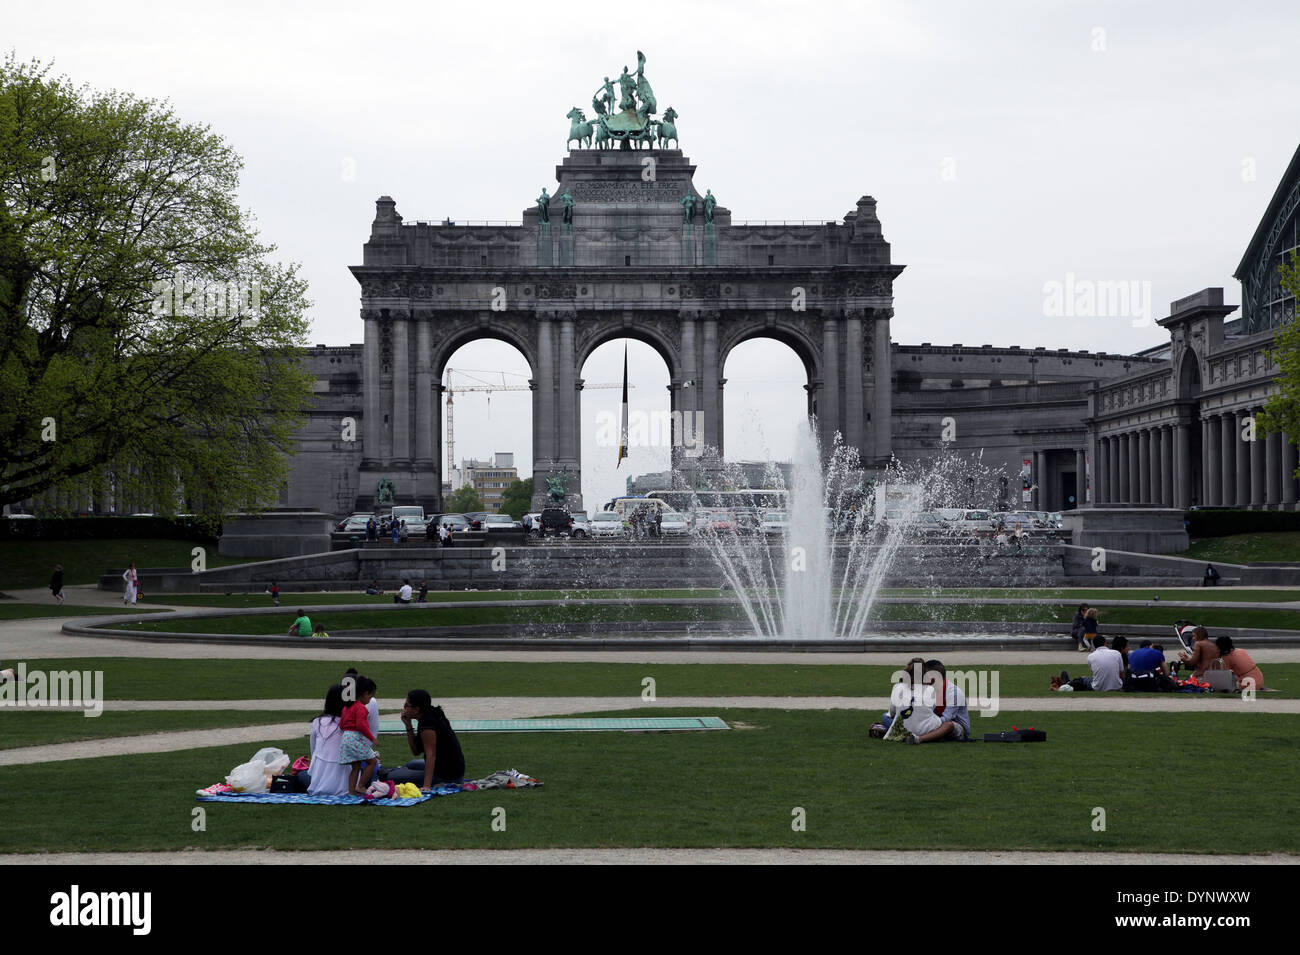 The triumphal arch.Parc du Cinquantenaire.Park of the Fiftieth Anniversary.or Jubelpark.public urban park in Brussels.Belgium. - Stock Image